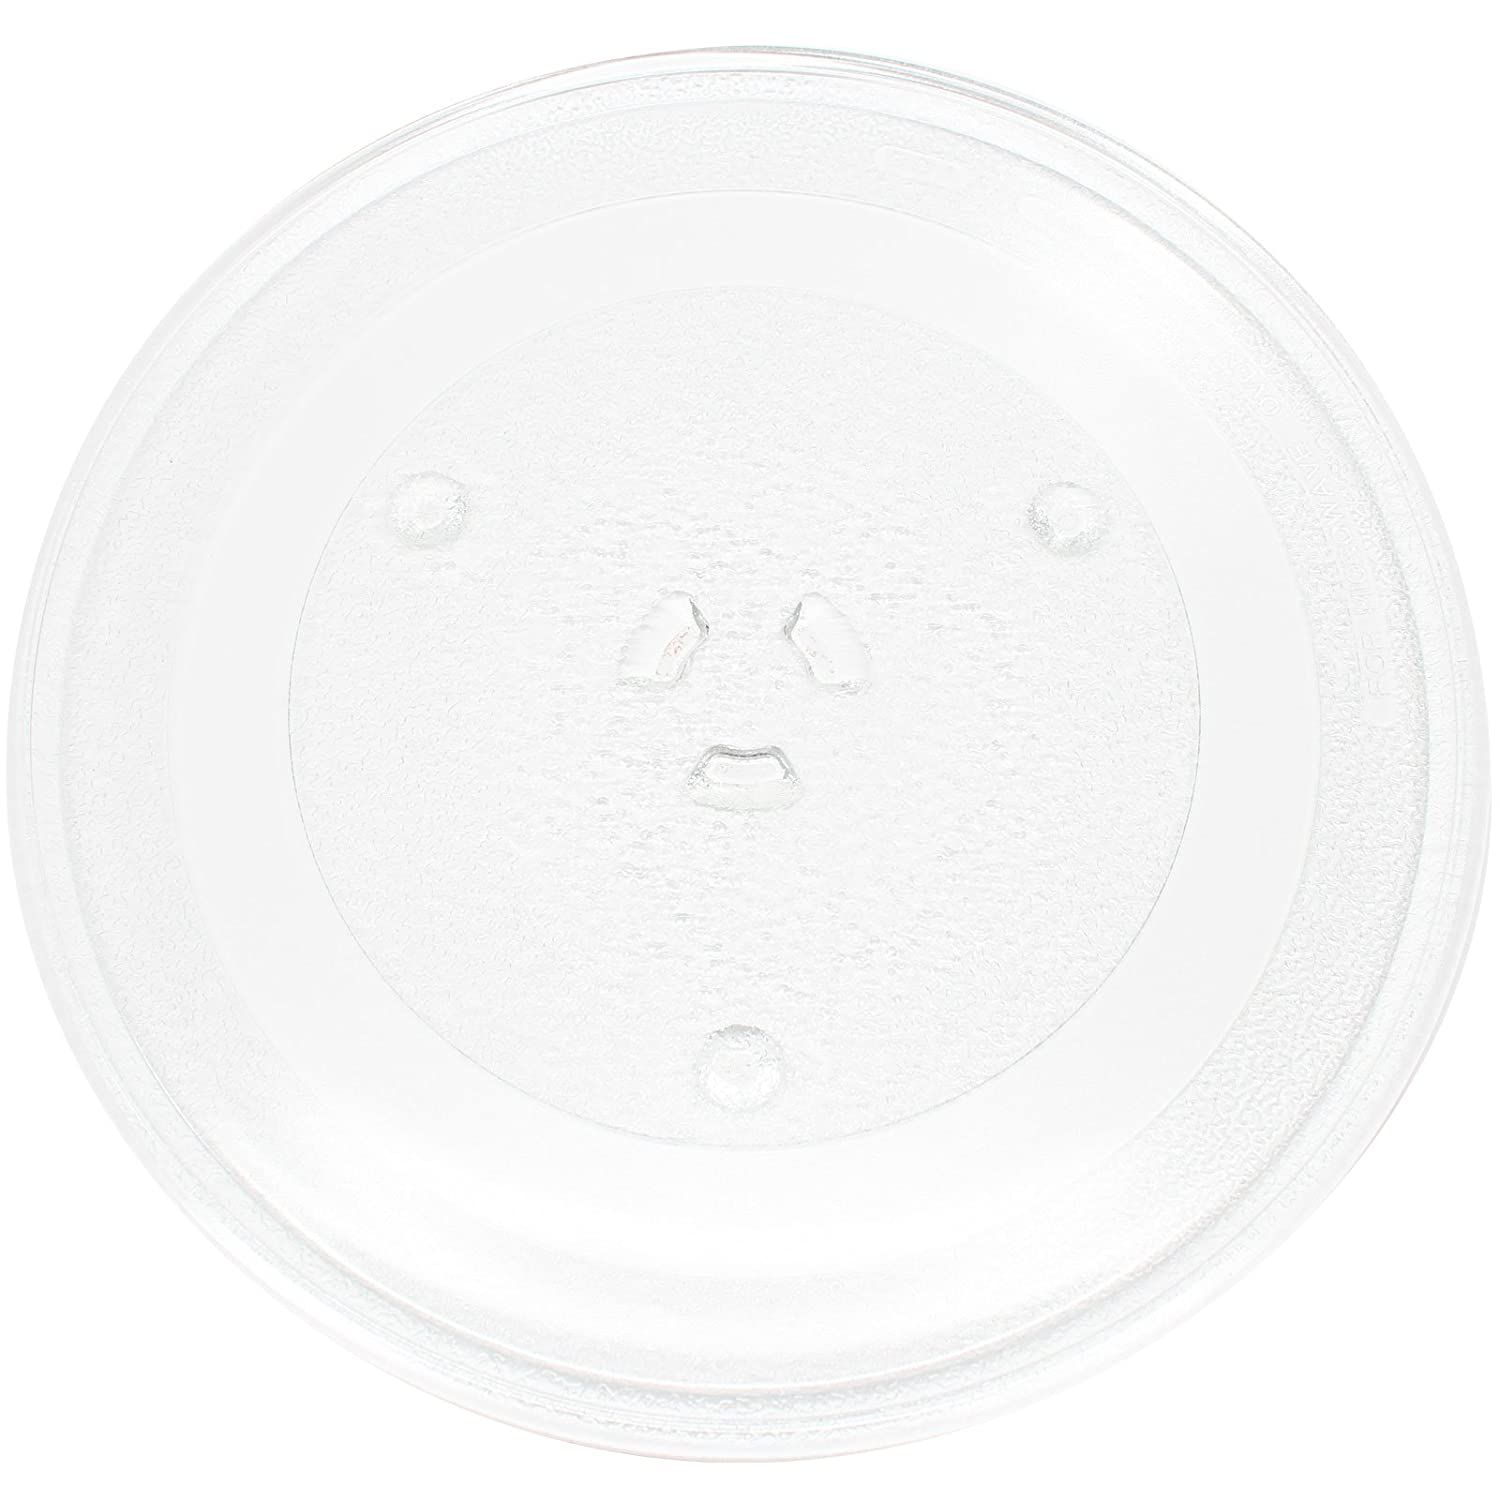 "Replacement Samsung MW4370W Microwave Glass Plate - Compatible Samsung DE74-20102 Microwave Glass Turntable Tray - 11 1/4"" (285mm)"